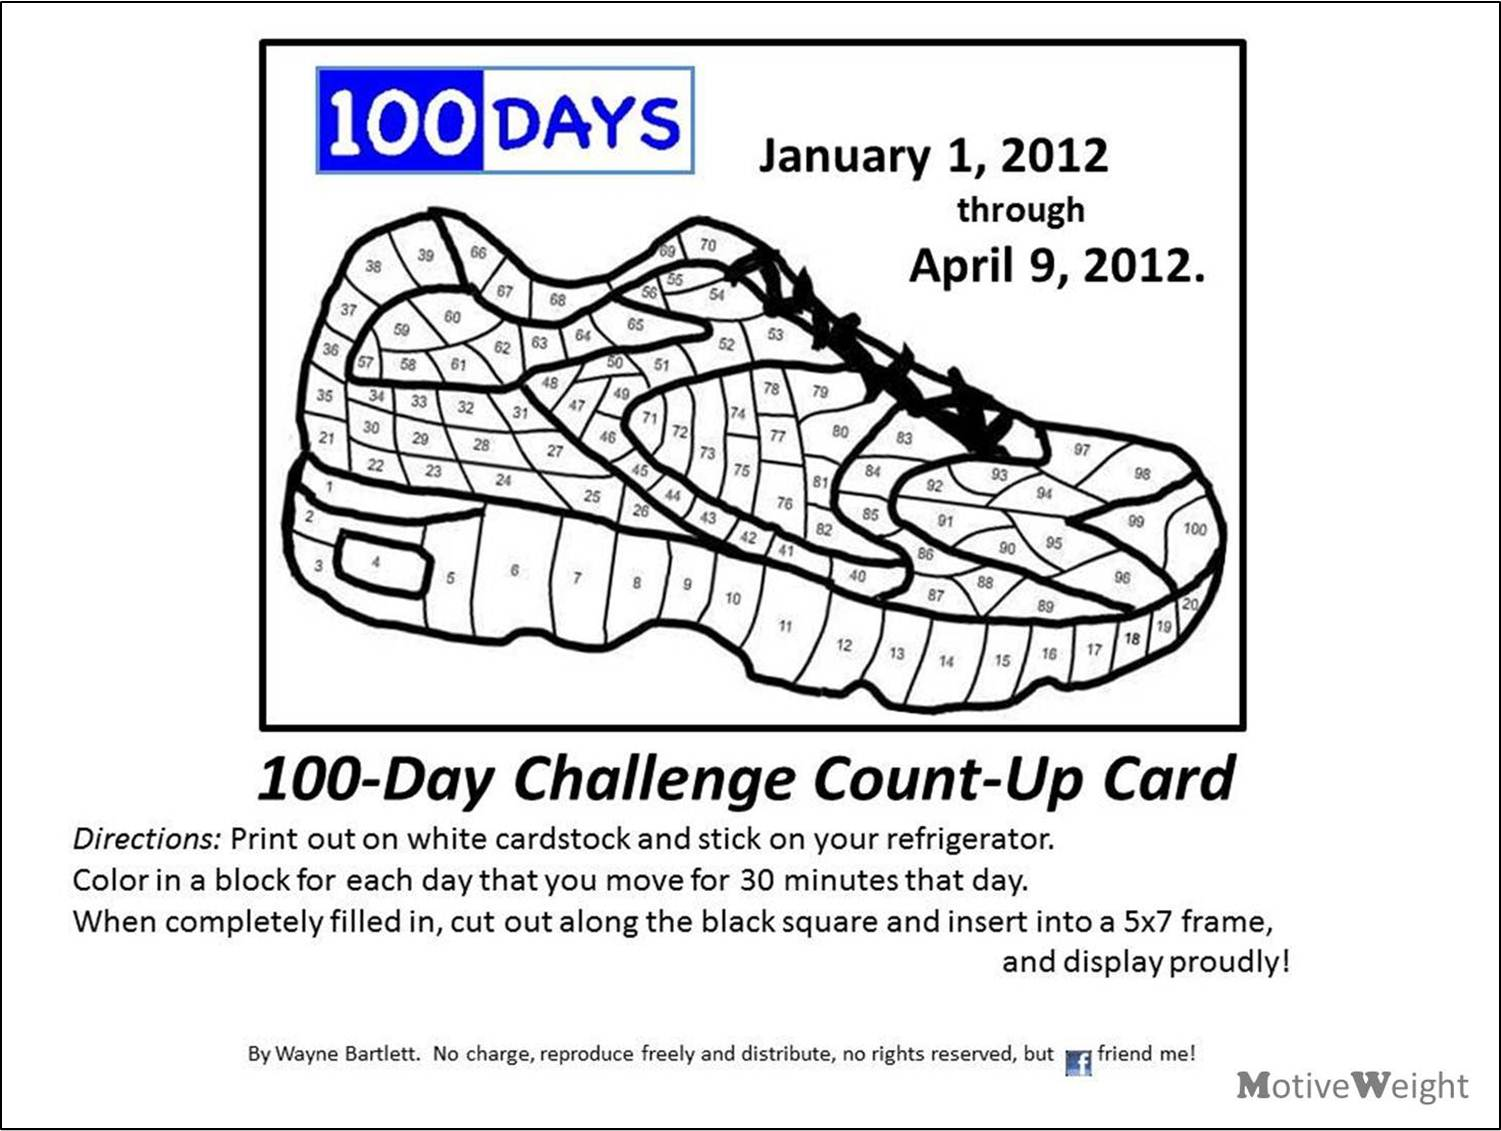 MotiveWeight: 100 Day Challenge Count-up Card